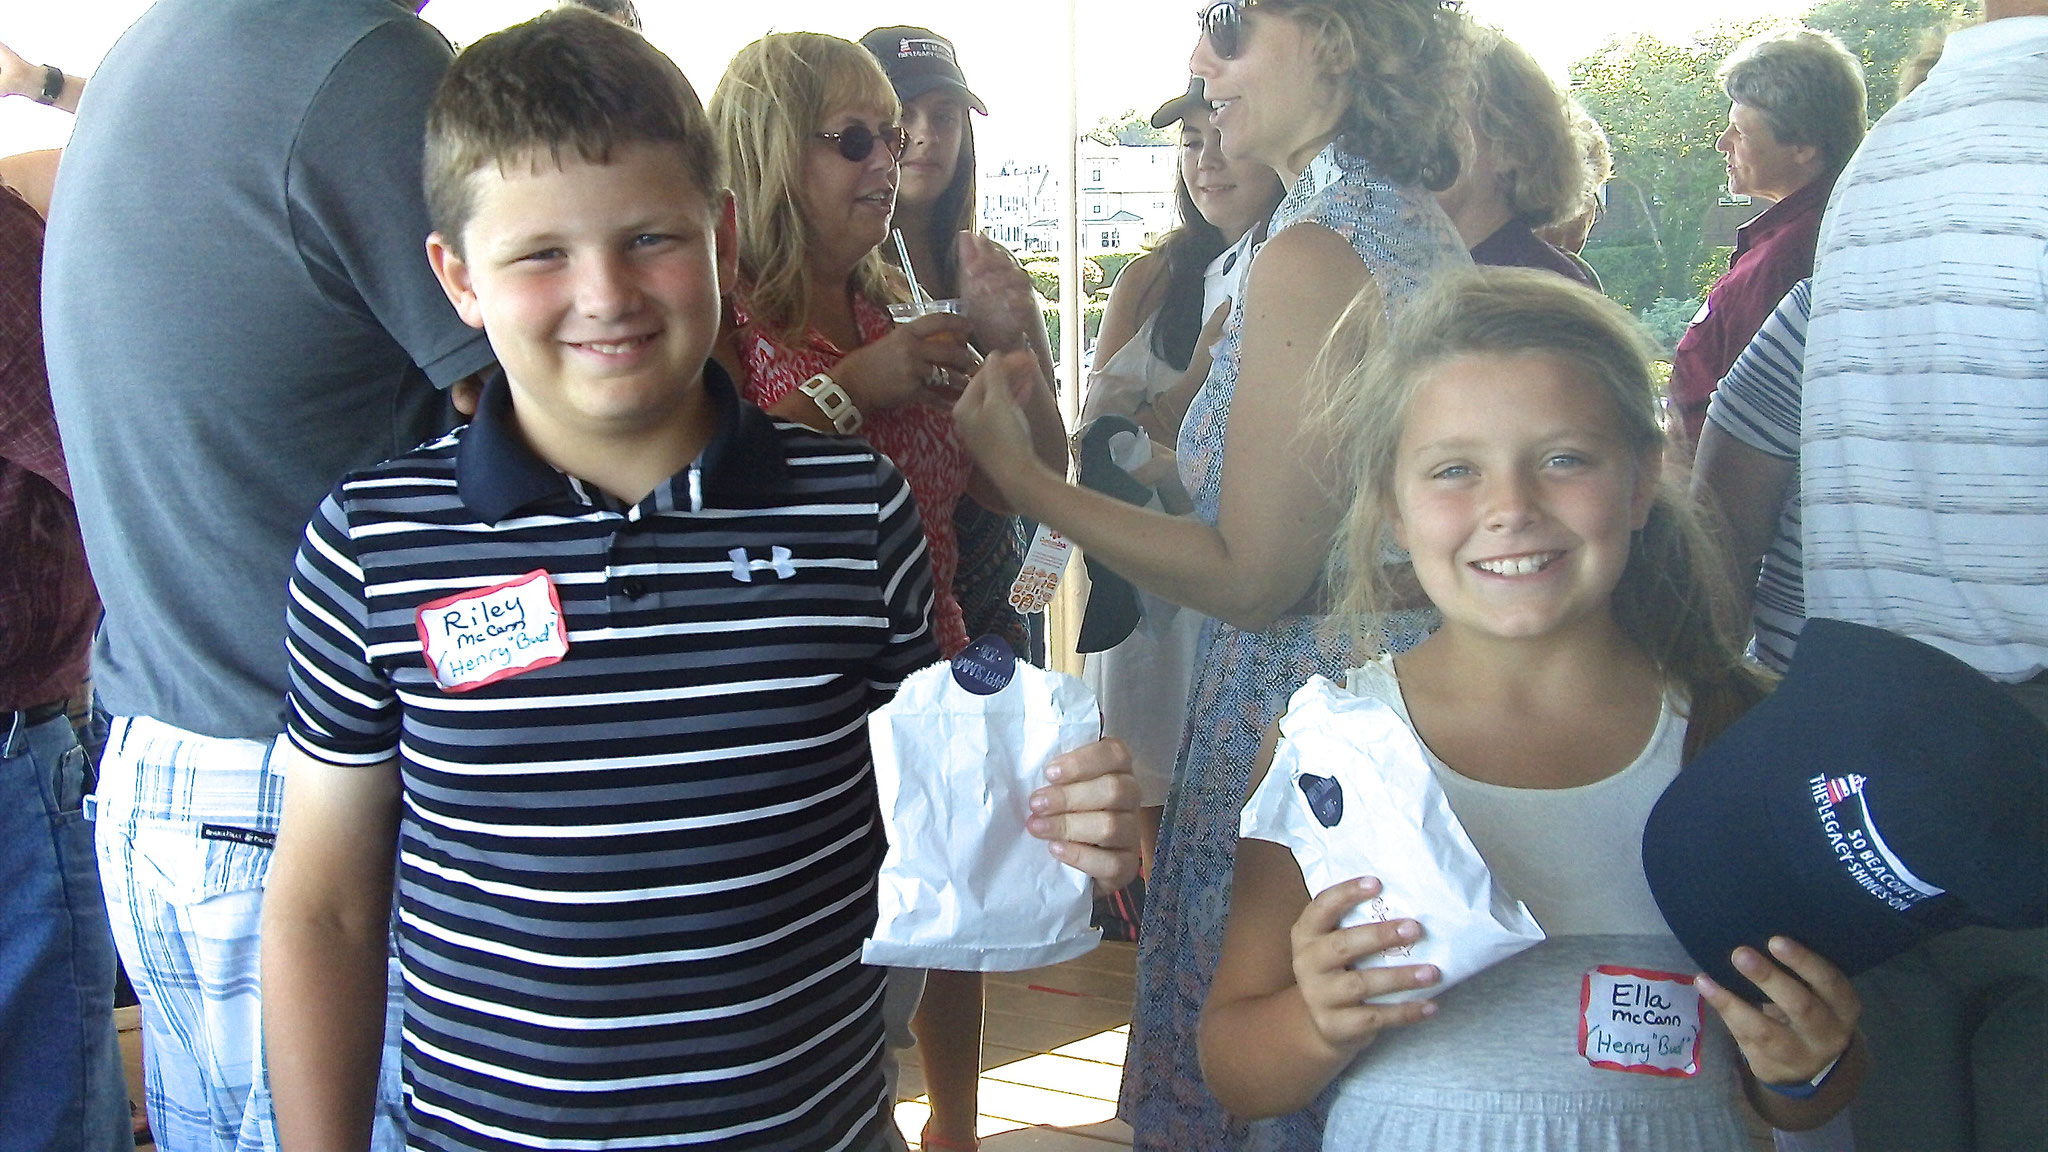 Riley & Ella (Bethany & Mike's children, Bud's great grandchildren) enjoy the party favors